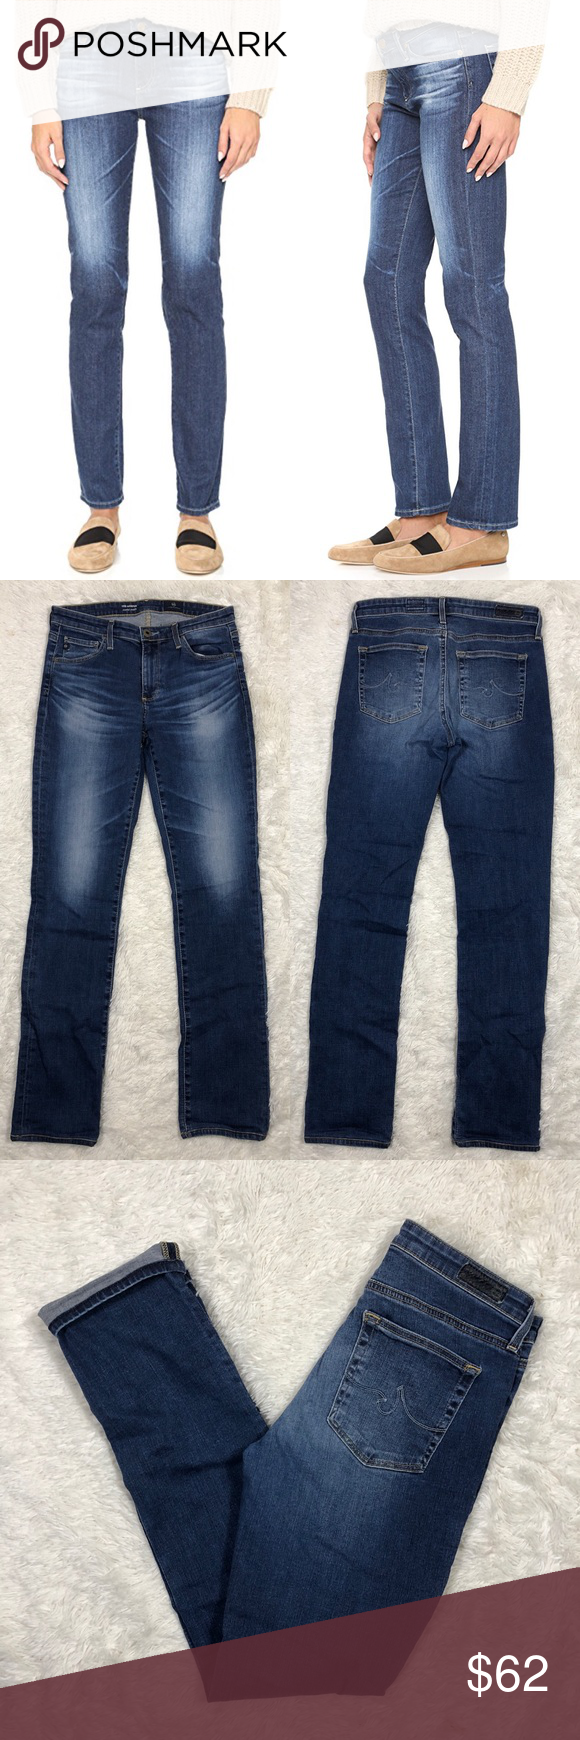 """3d4d3f00b856 AG The Harper Essential Straight Leg Jeans Sz 27 AG Adriano Goldschmied The Harper  Essential Straight Leg Jeans 5 Years Argent Waist  13"""" stretches to 15"""" ..."""